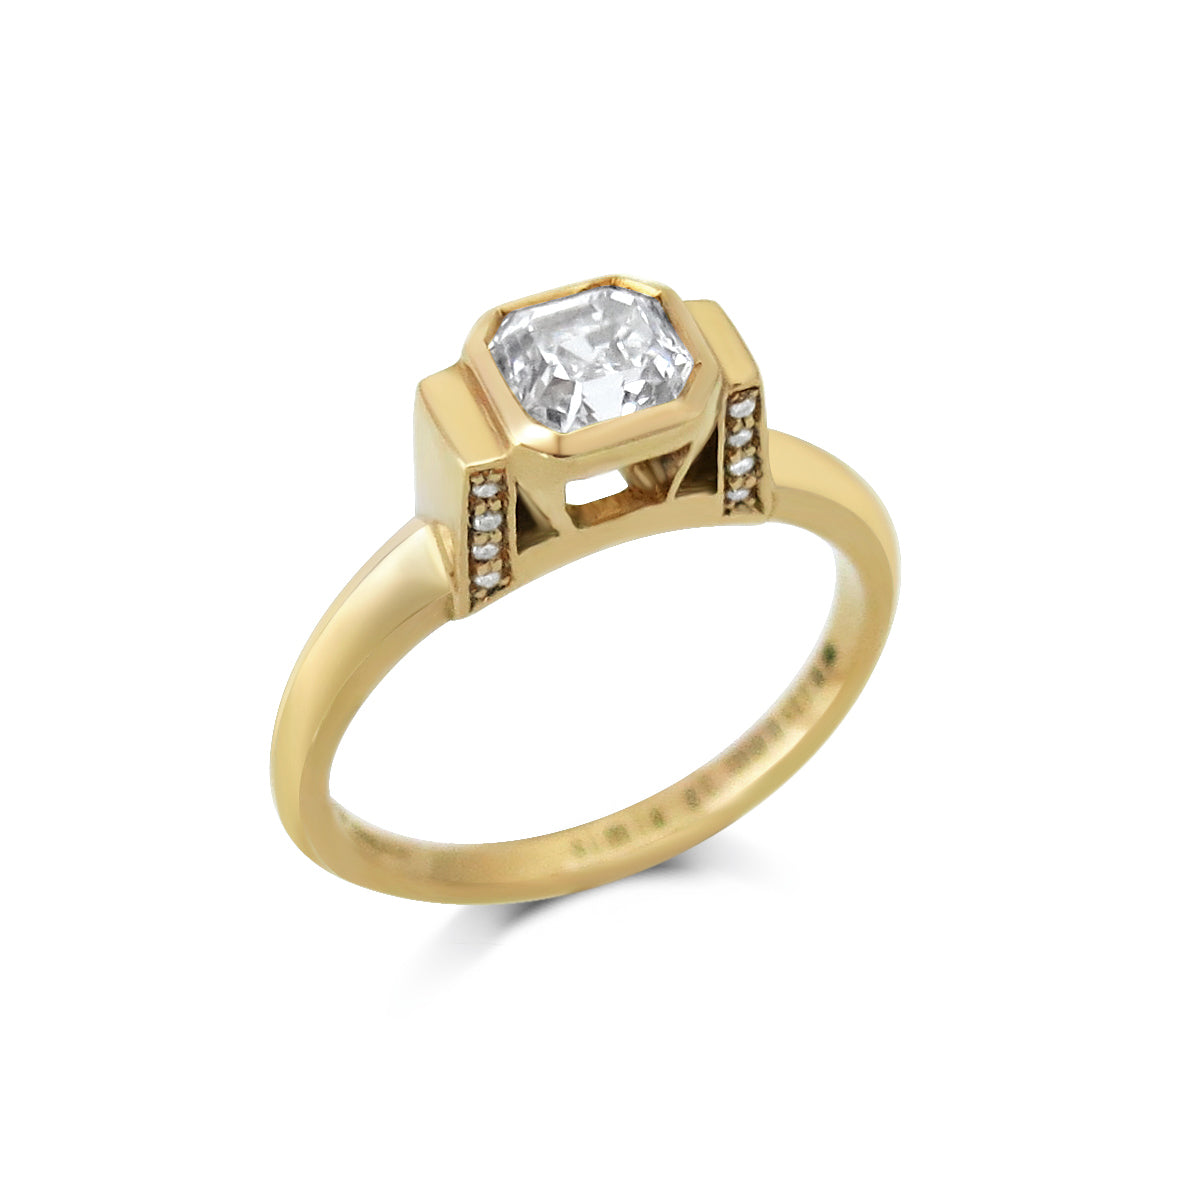 Asscher Cut Diamond 18ct Yellow Gold Engagement Ring